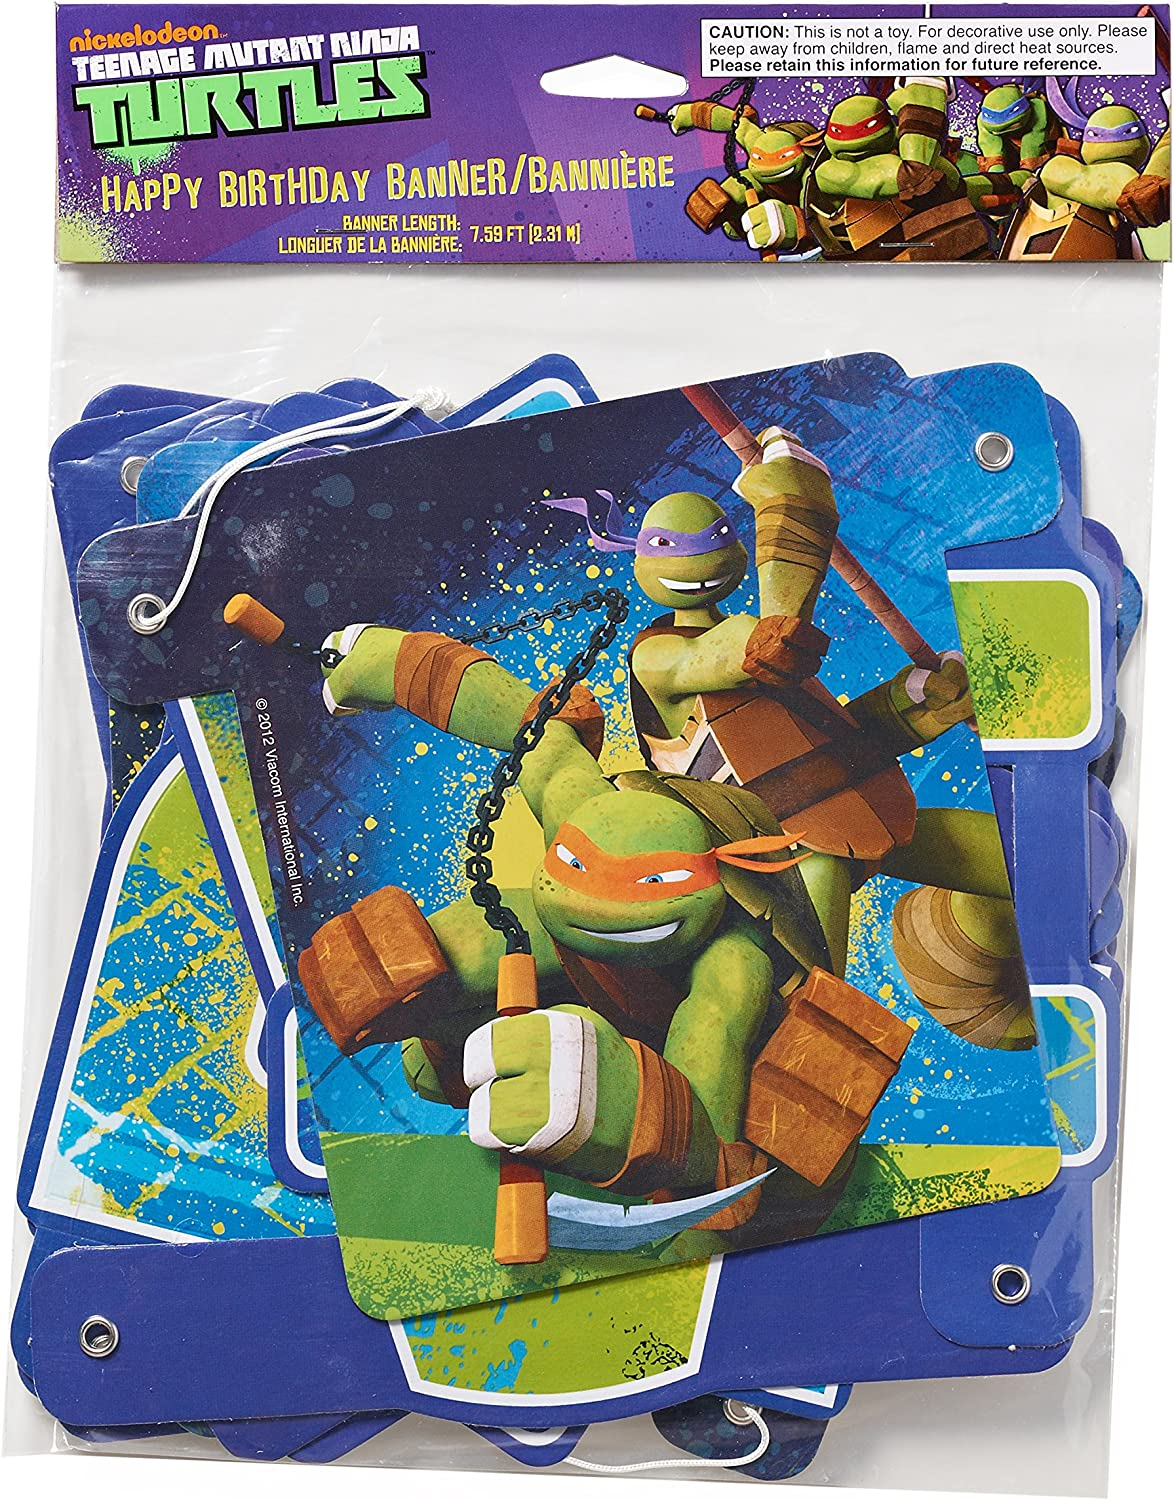 Amazon.com: Teenage Mutant Ninja Turtles Plato de servir ...